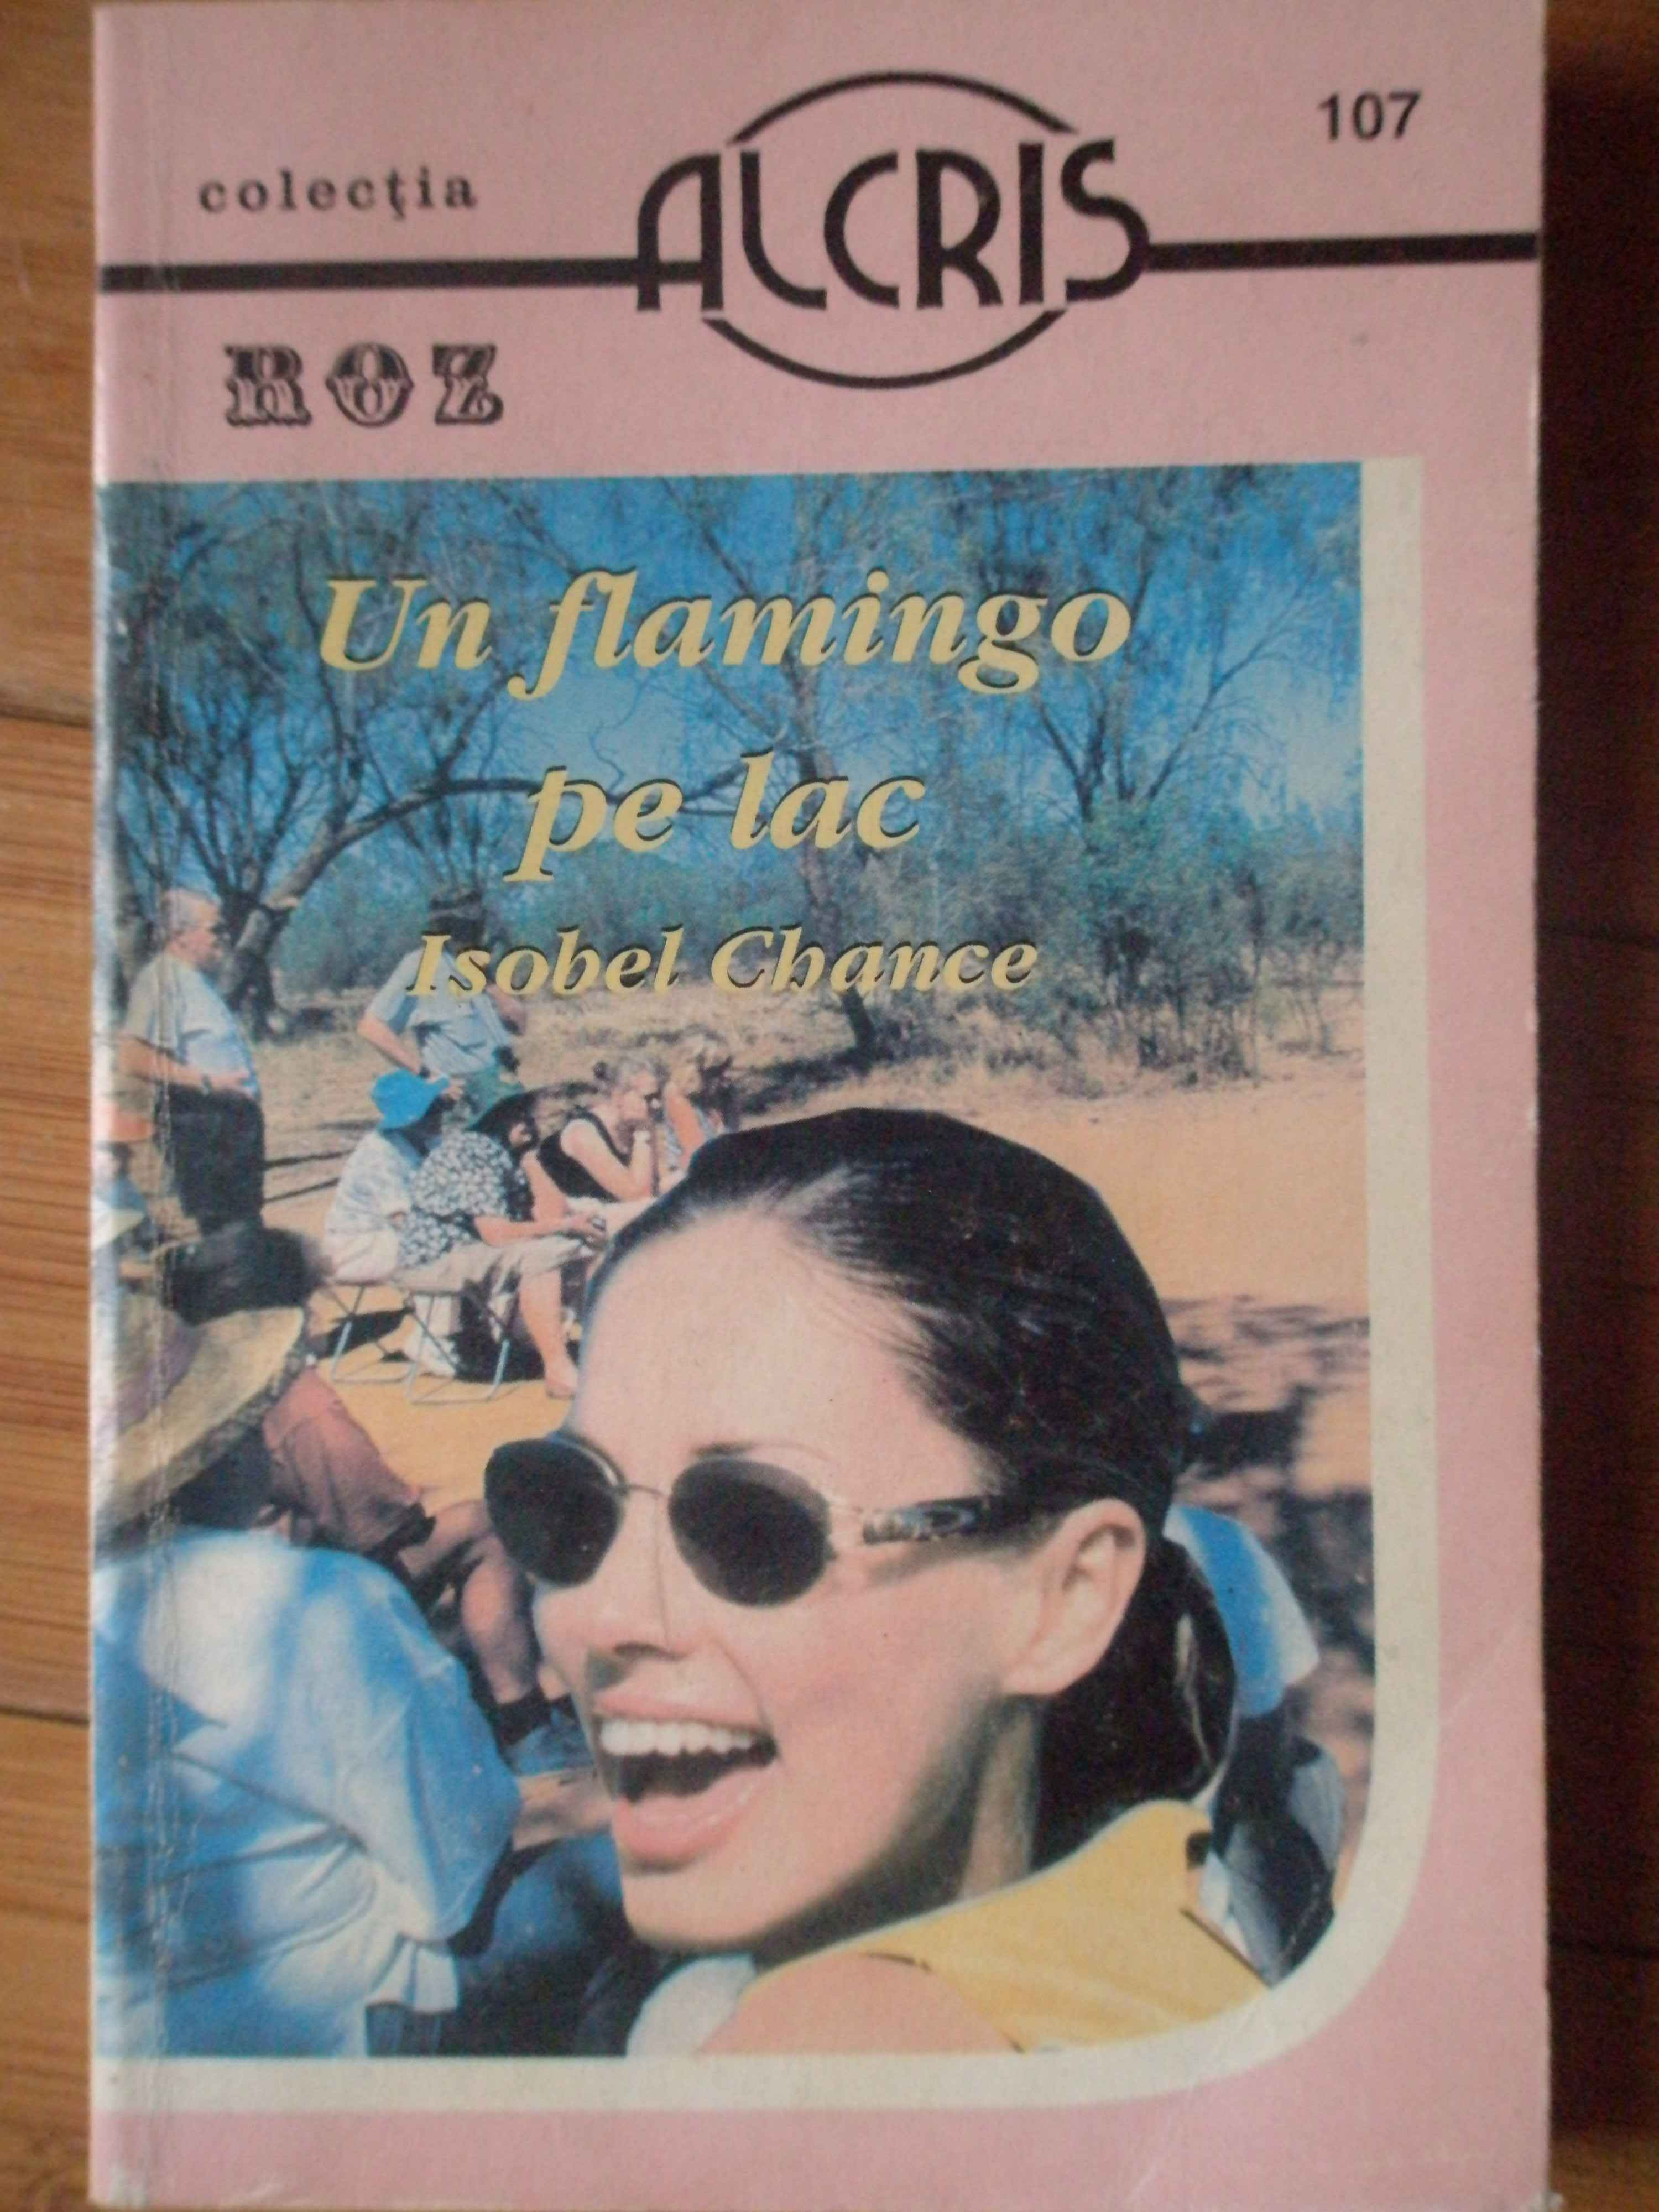 UN FLAMINGO PE LAC 107                                                                    ...